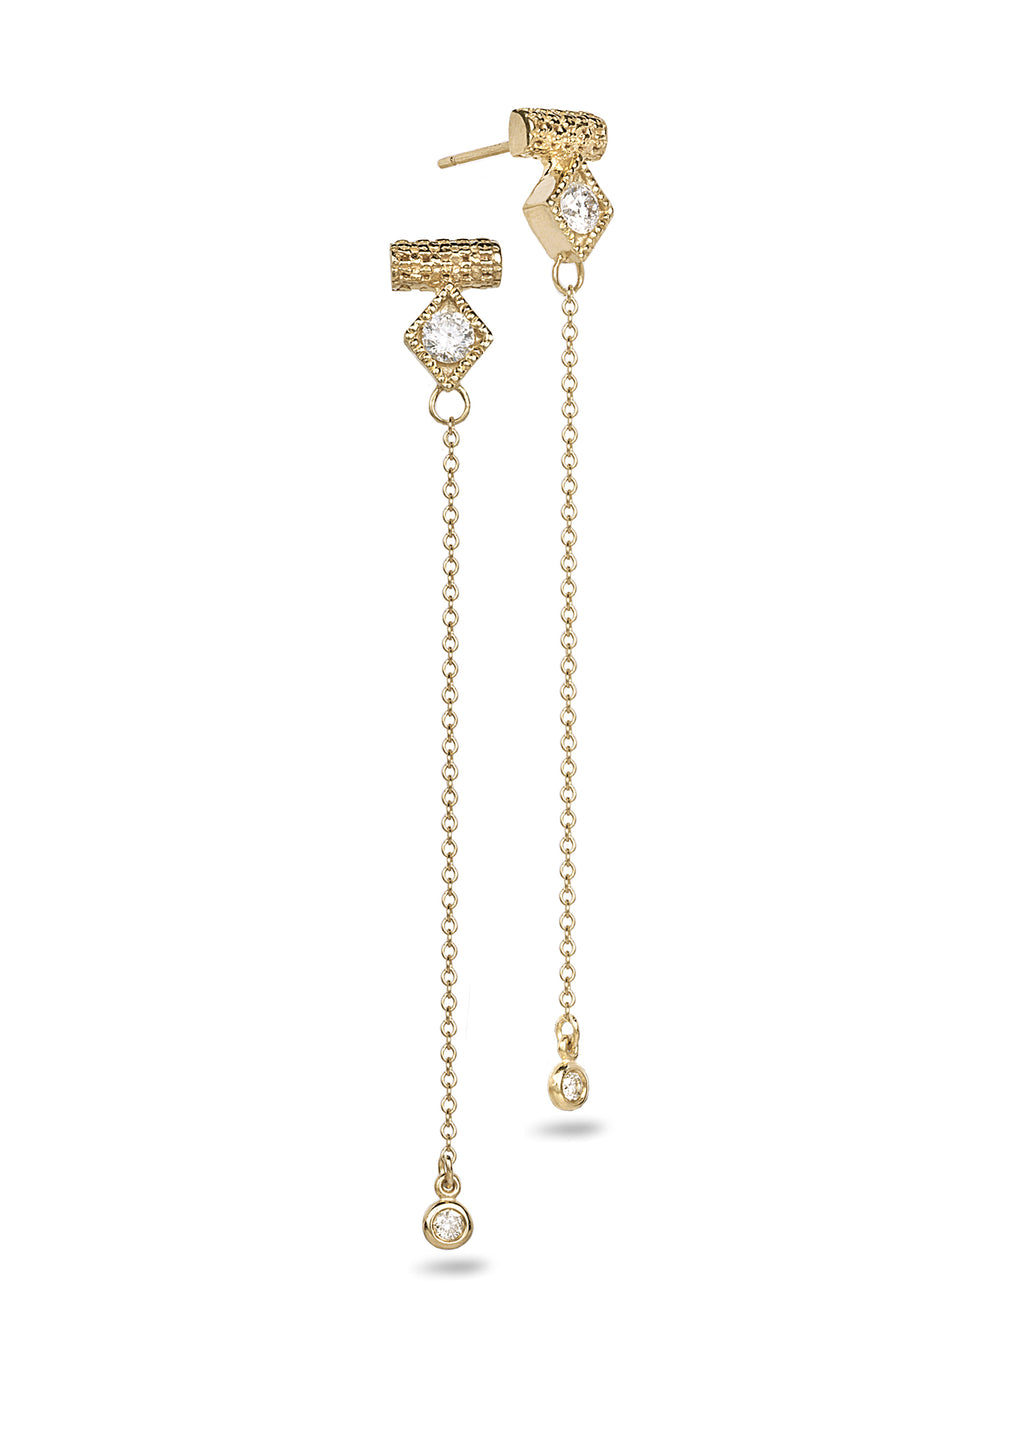 Chain drop fashion earrings - shiri tam fine jewelry